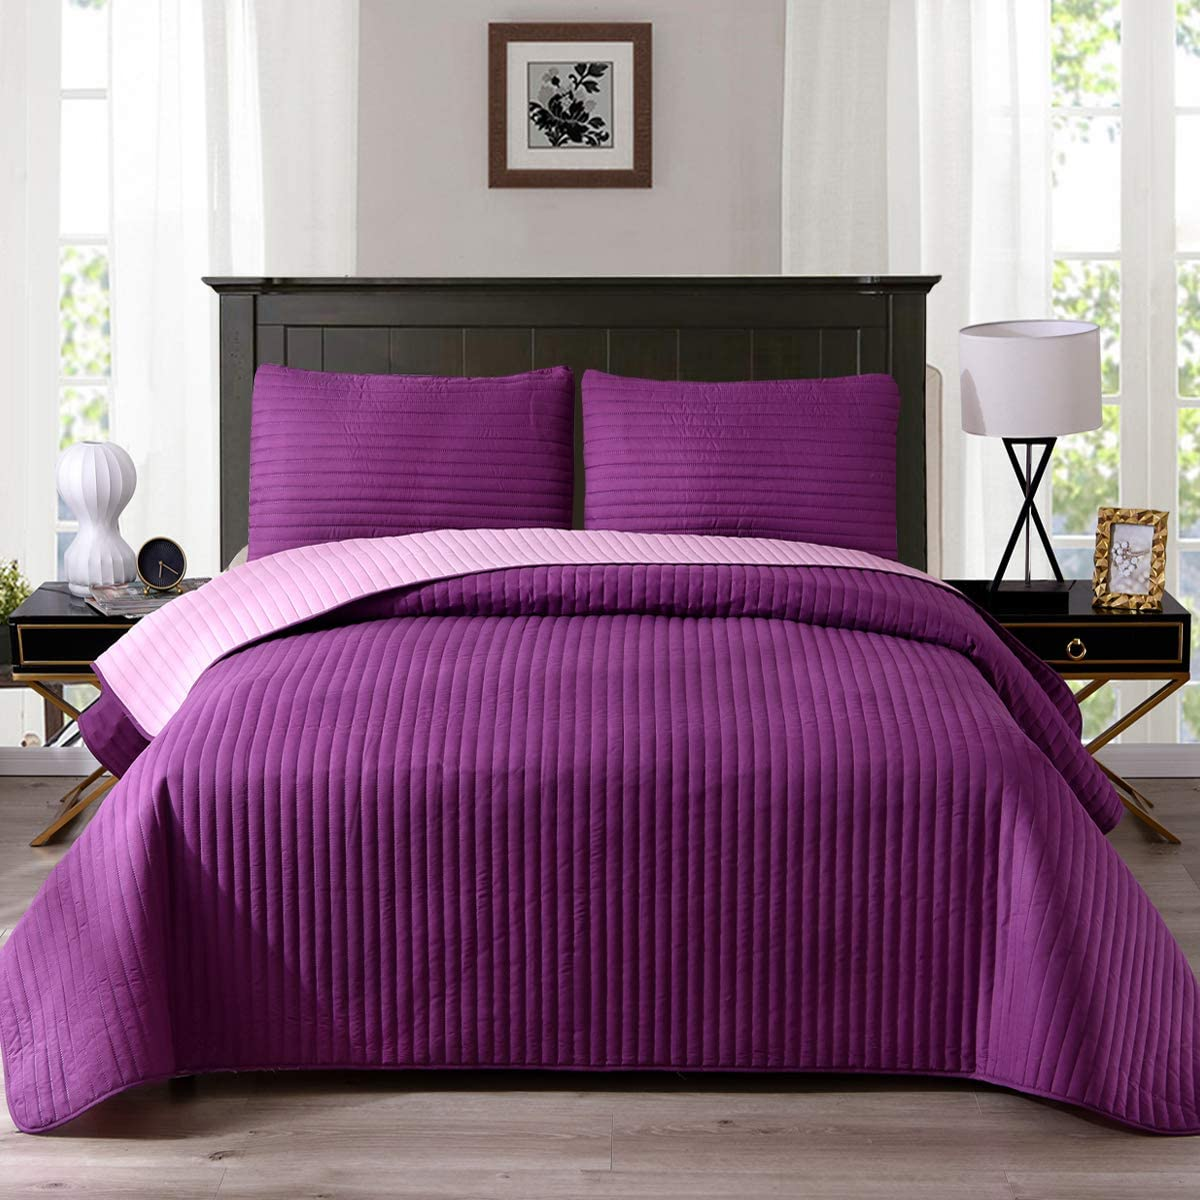 "Exclusivo Mezcla Ultrasonic Reversible 3-Piece Queen Size Quilt Set with Pillow Shams, Lightweight Bedspread/Coverlet/Bed Cover - (Purple, 92""x88"")"